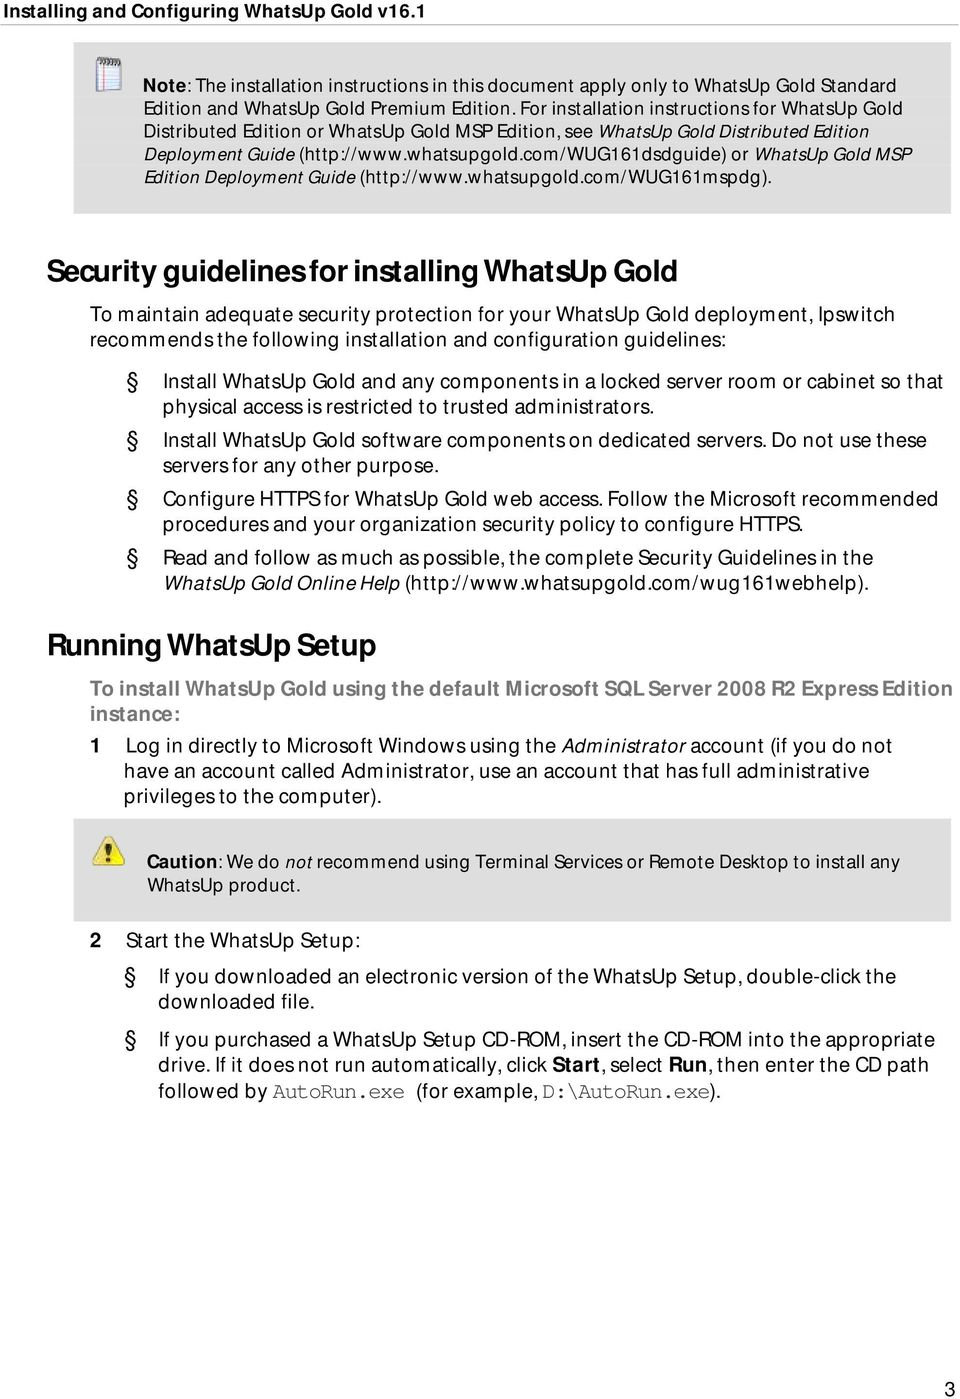 com/wug161dsdguide) or WhatsUp Gold MSP Edition Deployment Guide (http://www.whatsupgold.com/wug161mspdg).